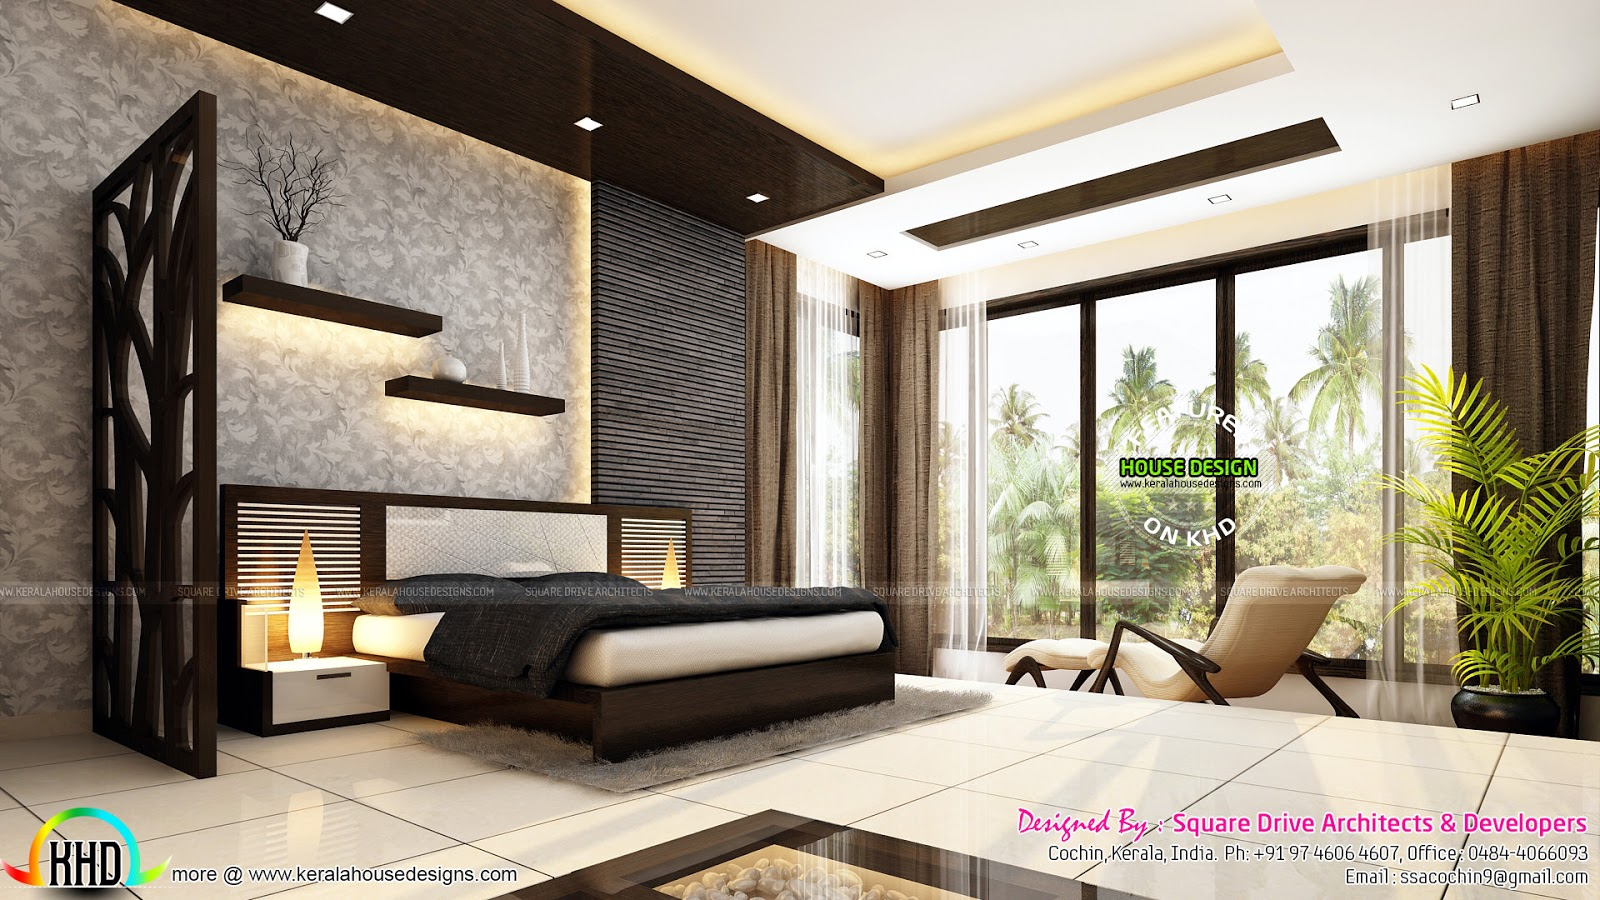 Very beautiful modern interior designs kerala home for Interior decoration for bedroom pictures